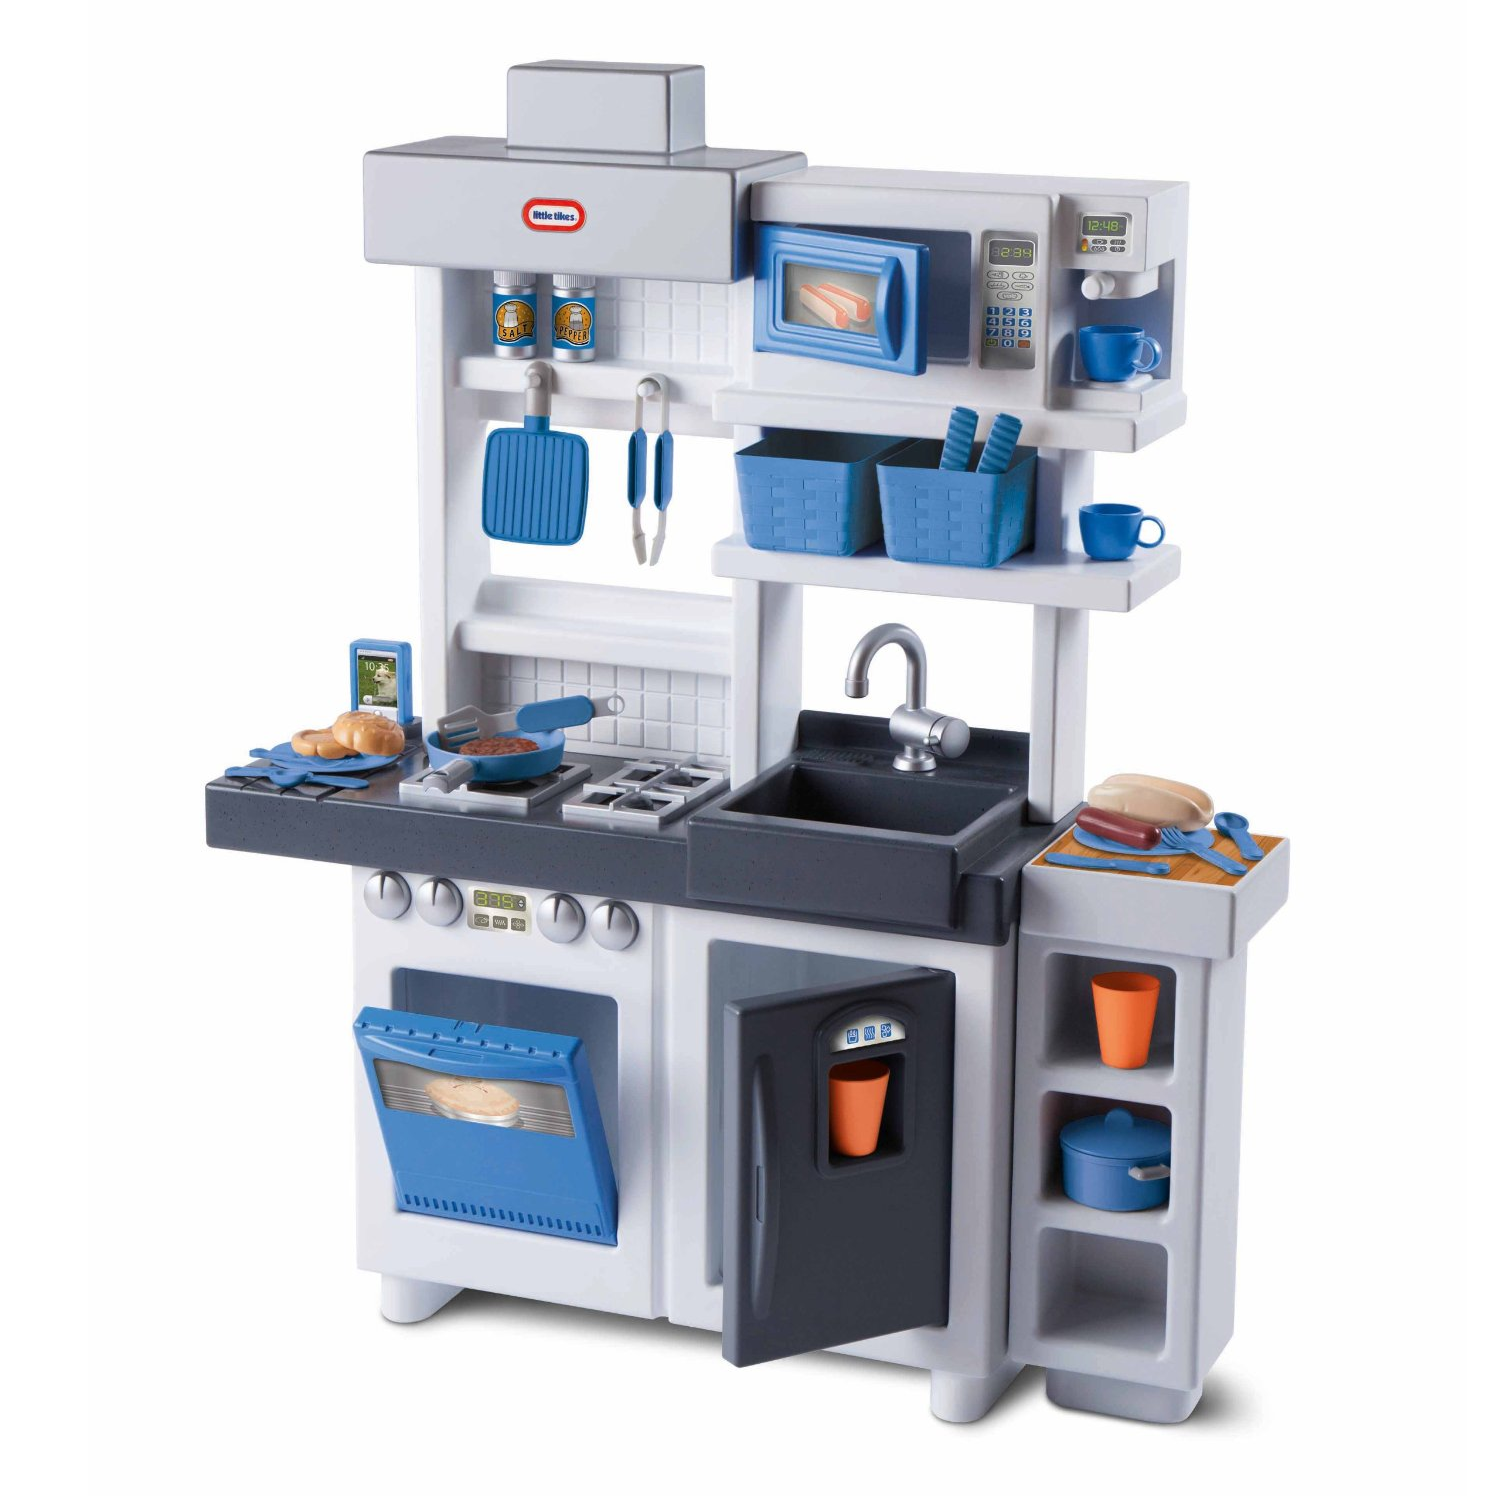 Little Tikes Ultimate Cook Kitchen Only $80 99 Shipped   -> Little Tikes Kuchnia Ultimate